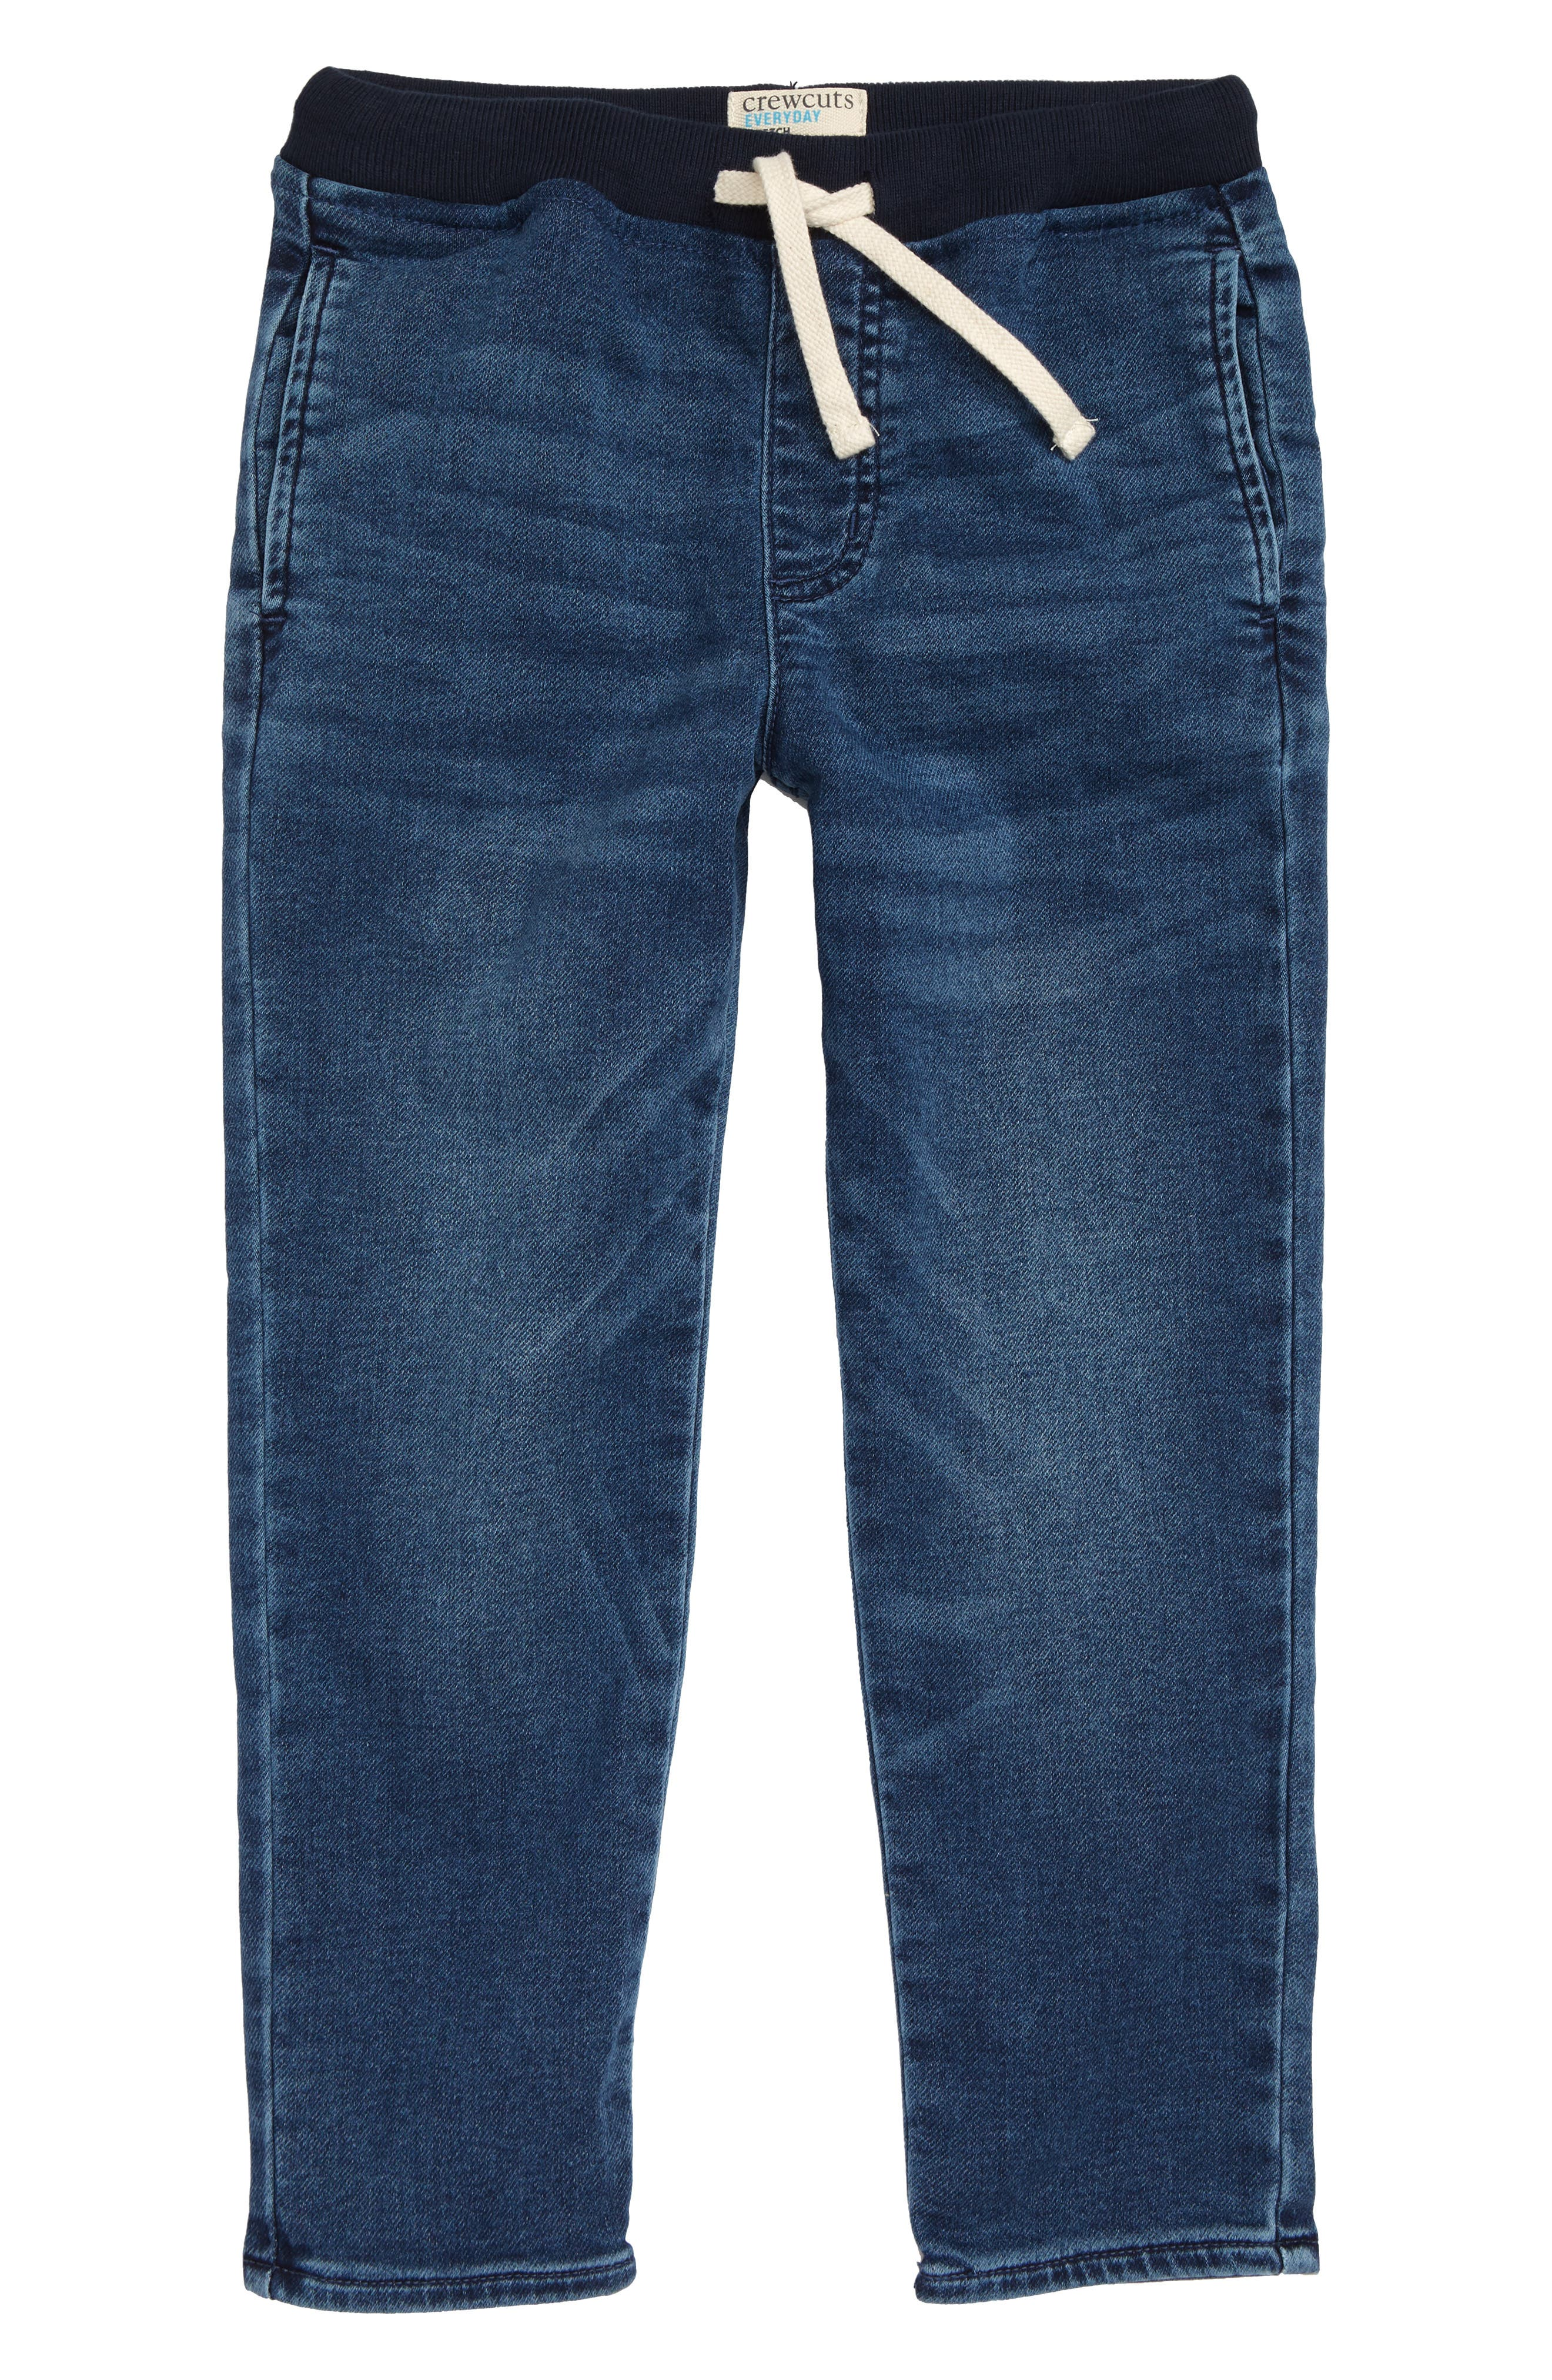 Runaround Pull-On Jeans,                         Main,                         color, 400